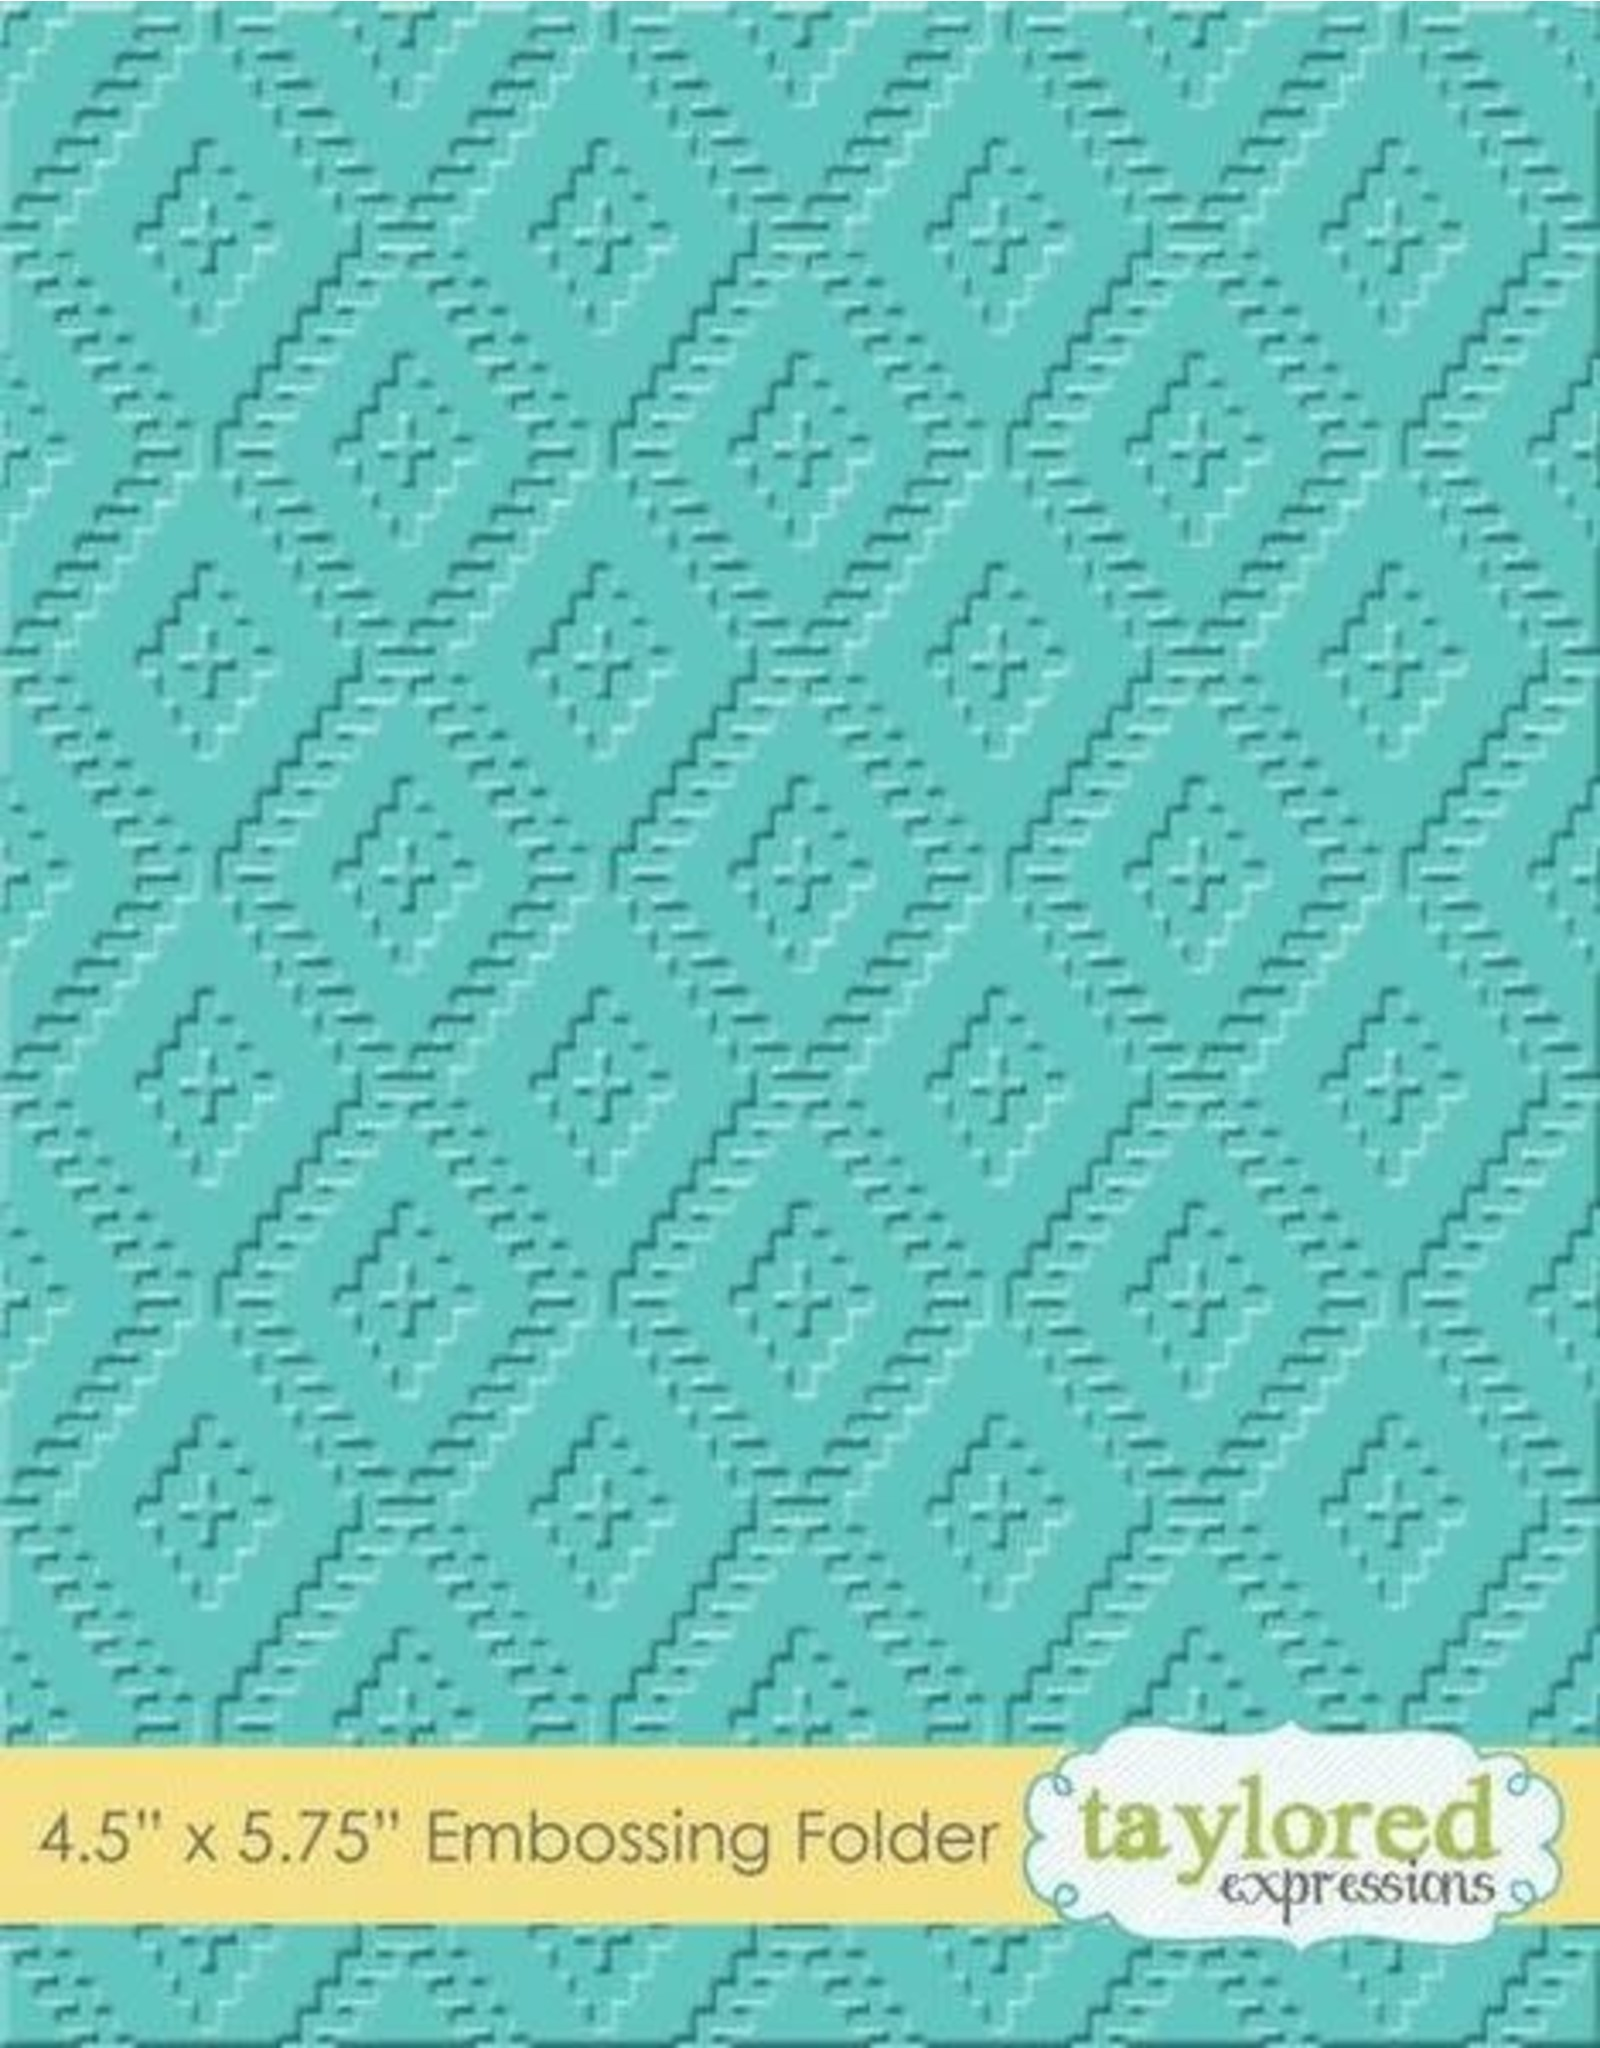 Taylored Expressions Ikat - Embossing Folder